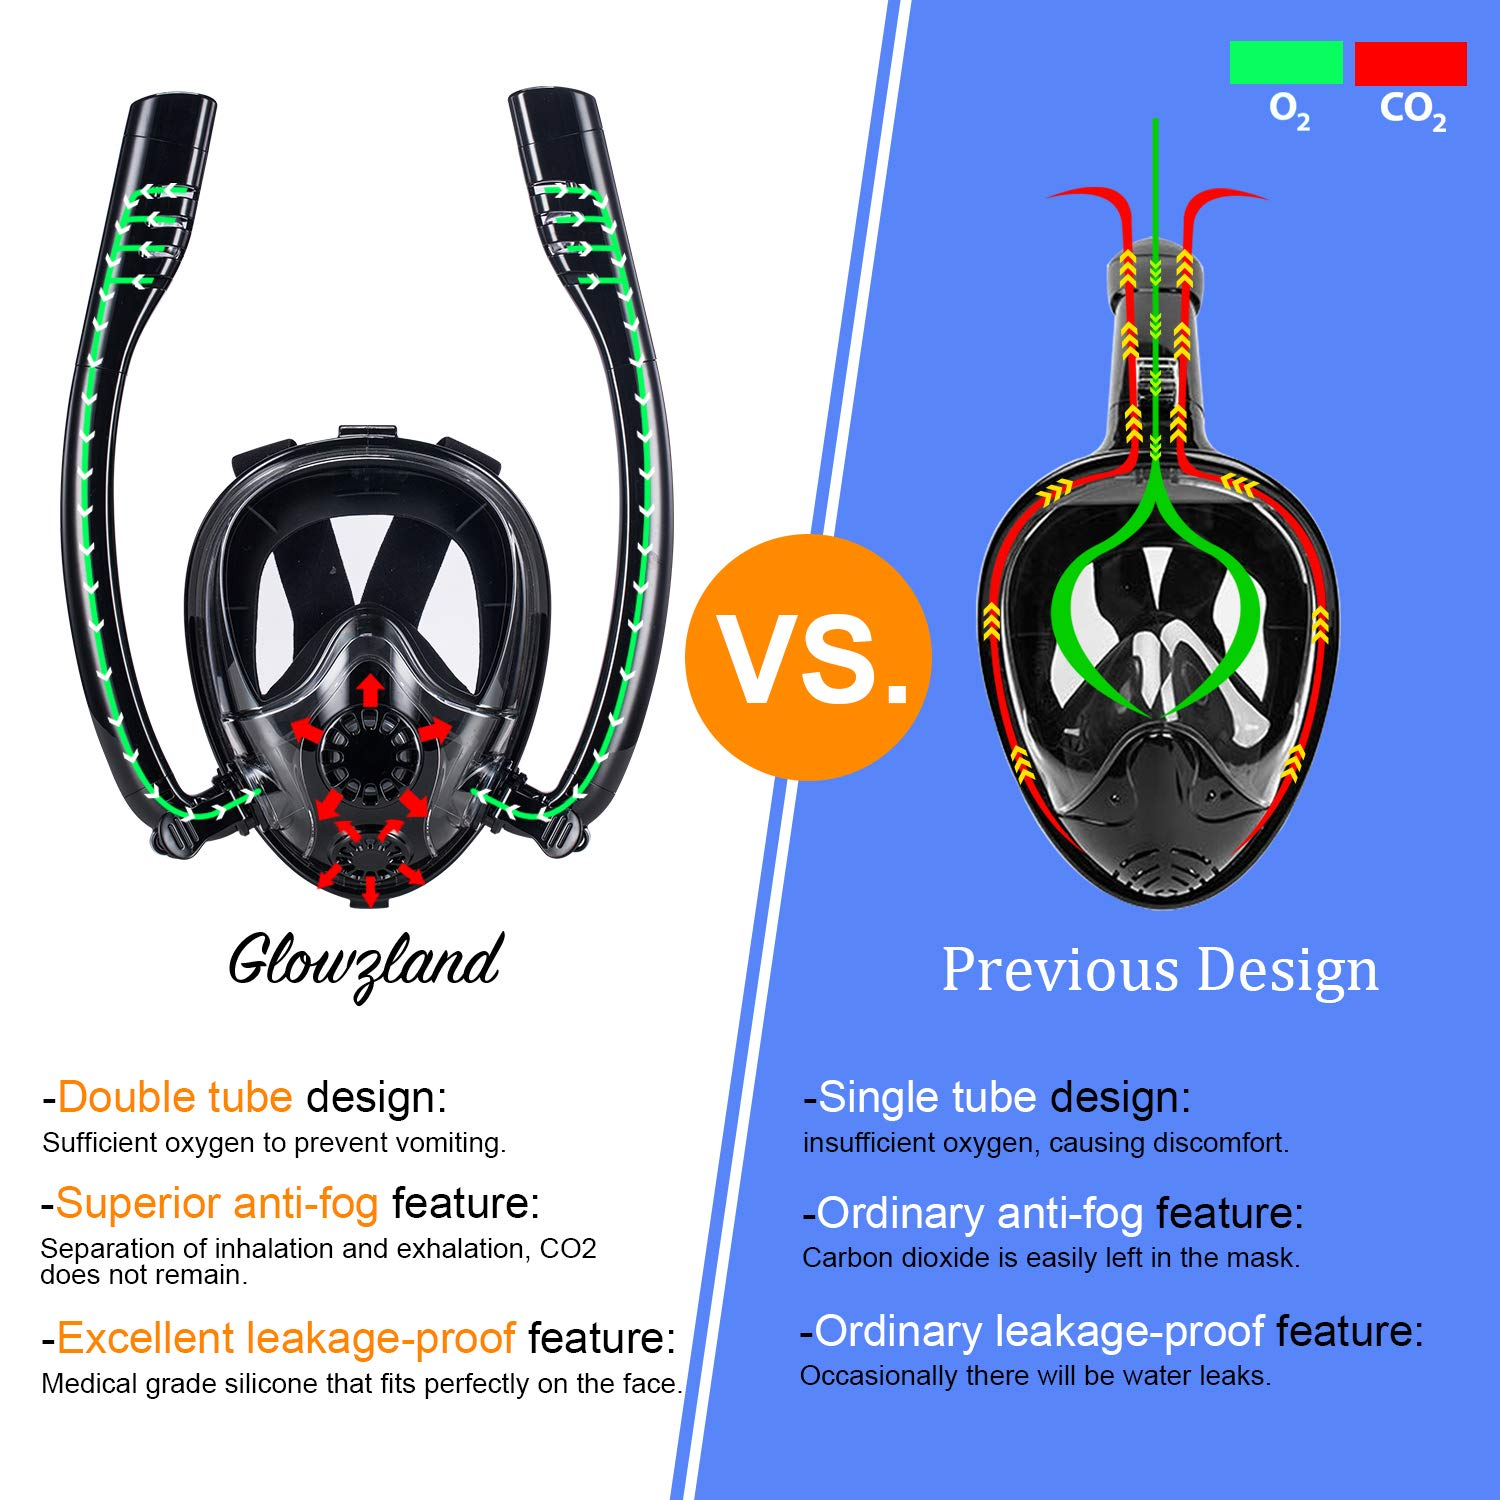 2019 New Full Face Snorkeling Mask 180/°Panoramic View Breathe Free Scuba Diving Mask Anti-fog Anti-Leak Dive Equipment with Sport Camera Mount for Adults and Kids Double Tubes GlowsLand Snorkel Mask